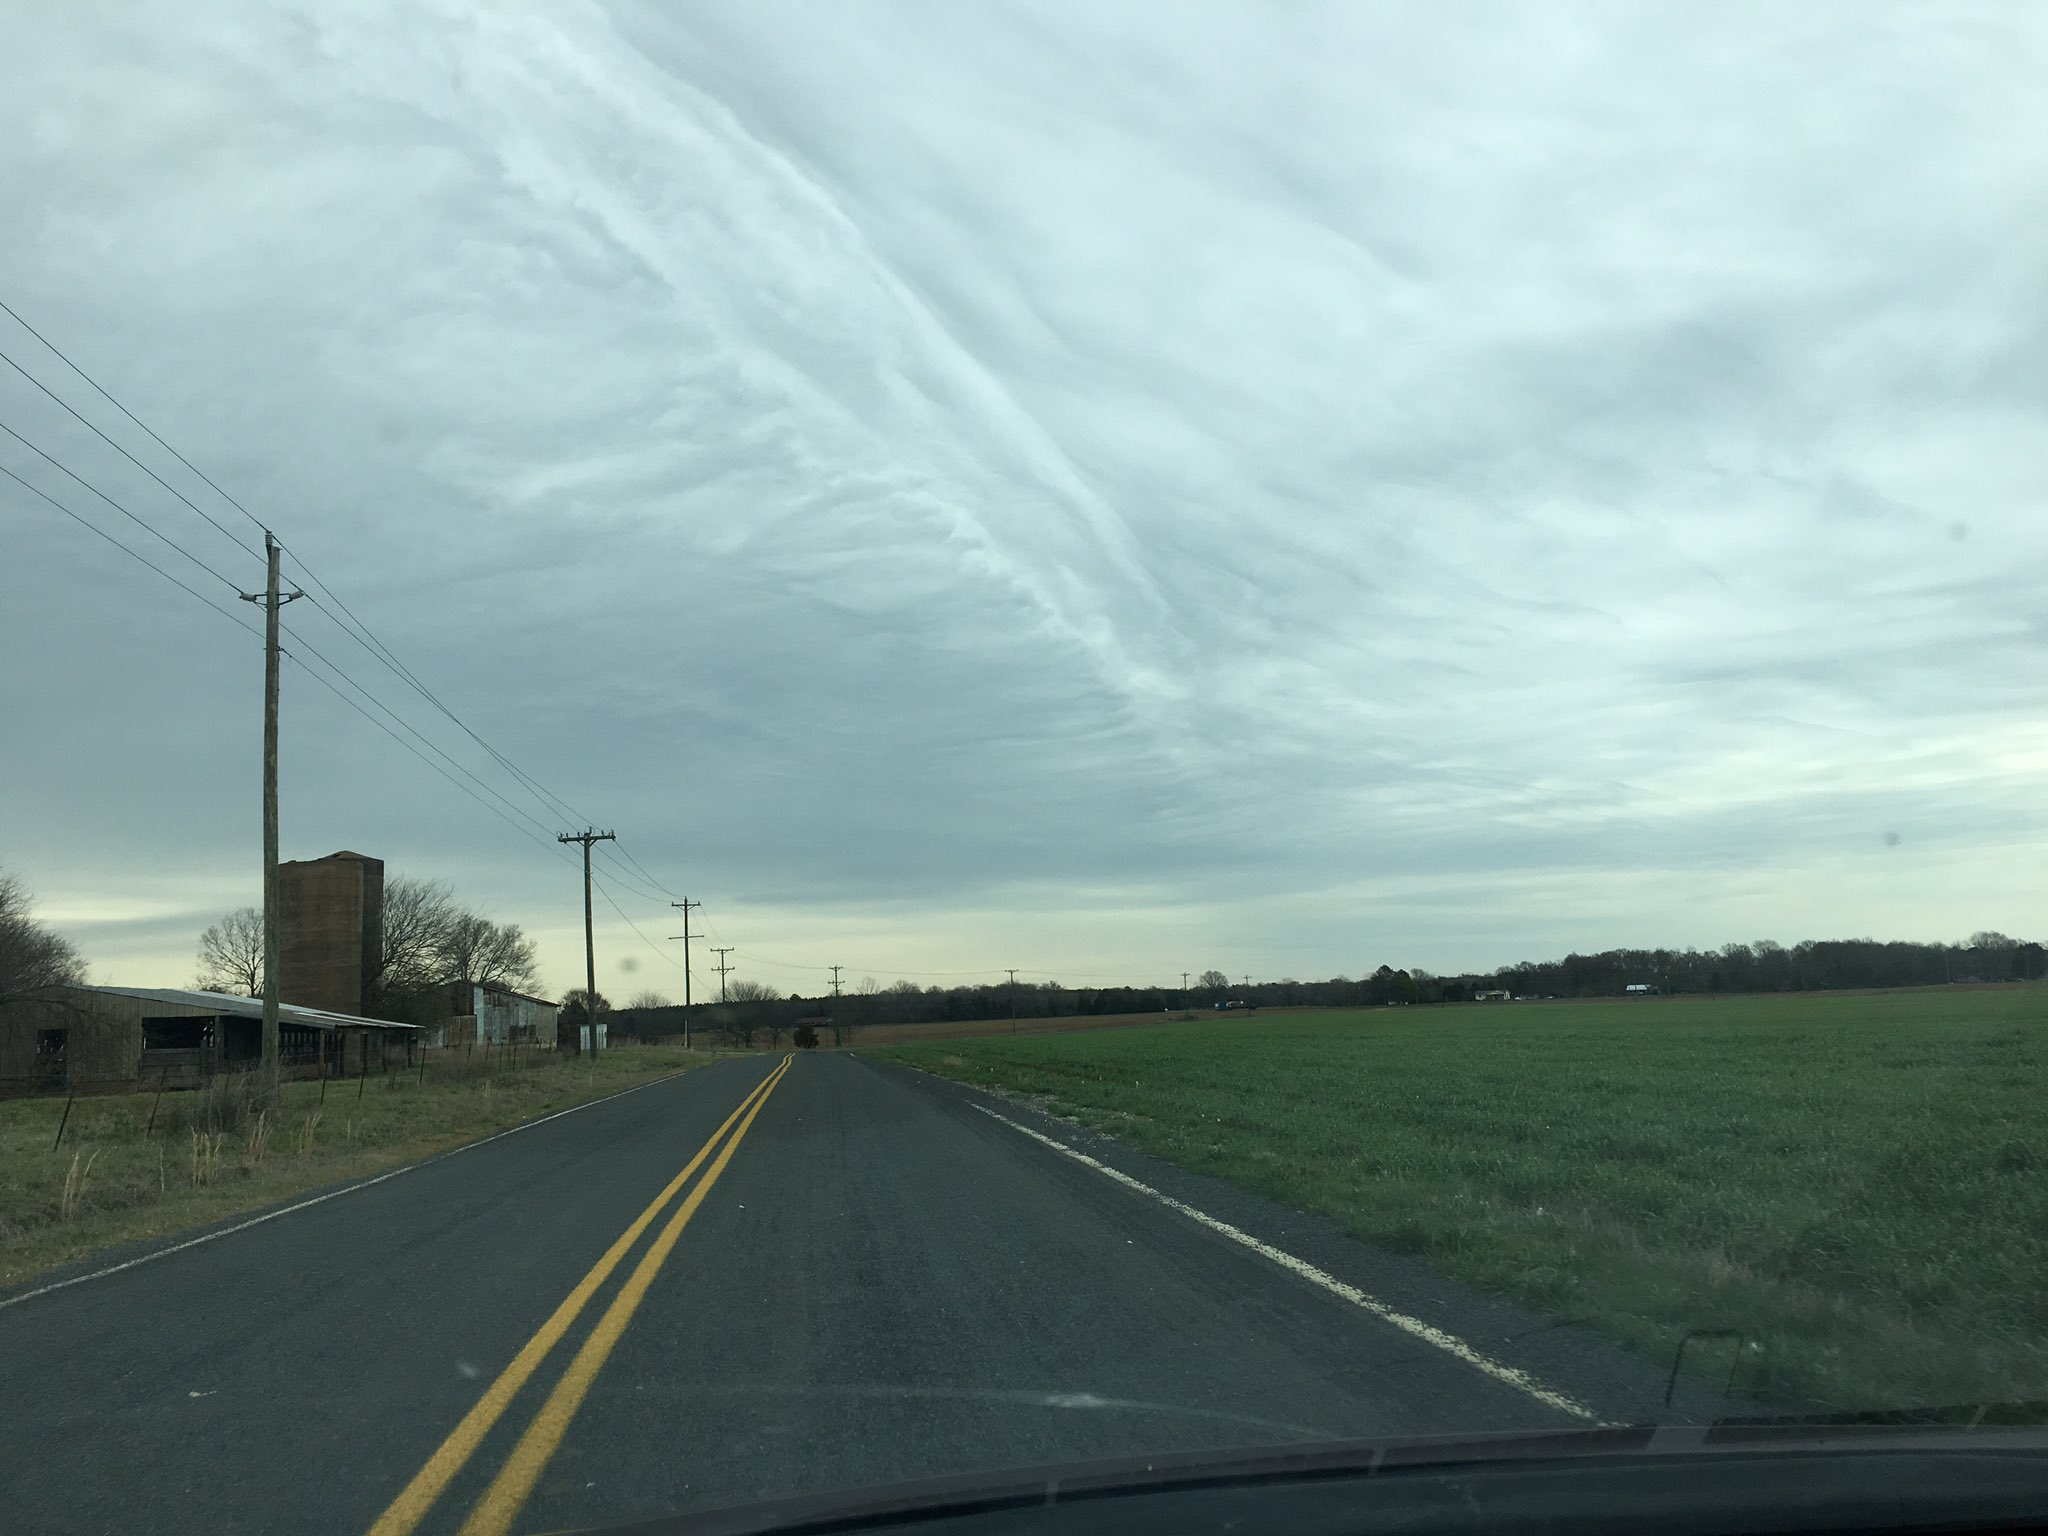 Lovely cloud formation on my drive home from the DZ this afternoon. https://t.co/2GMjsw4YaH